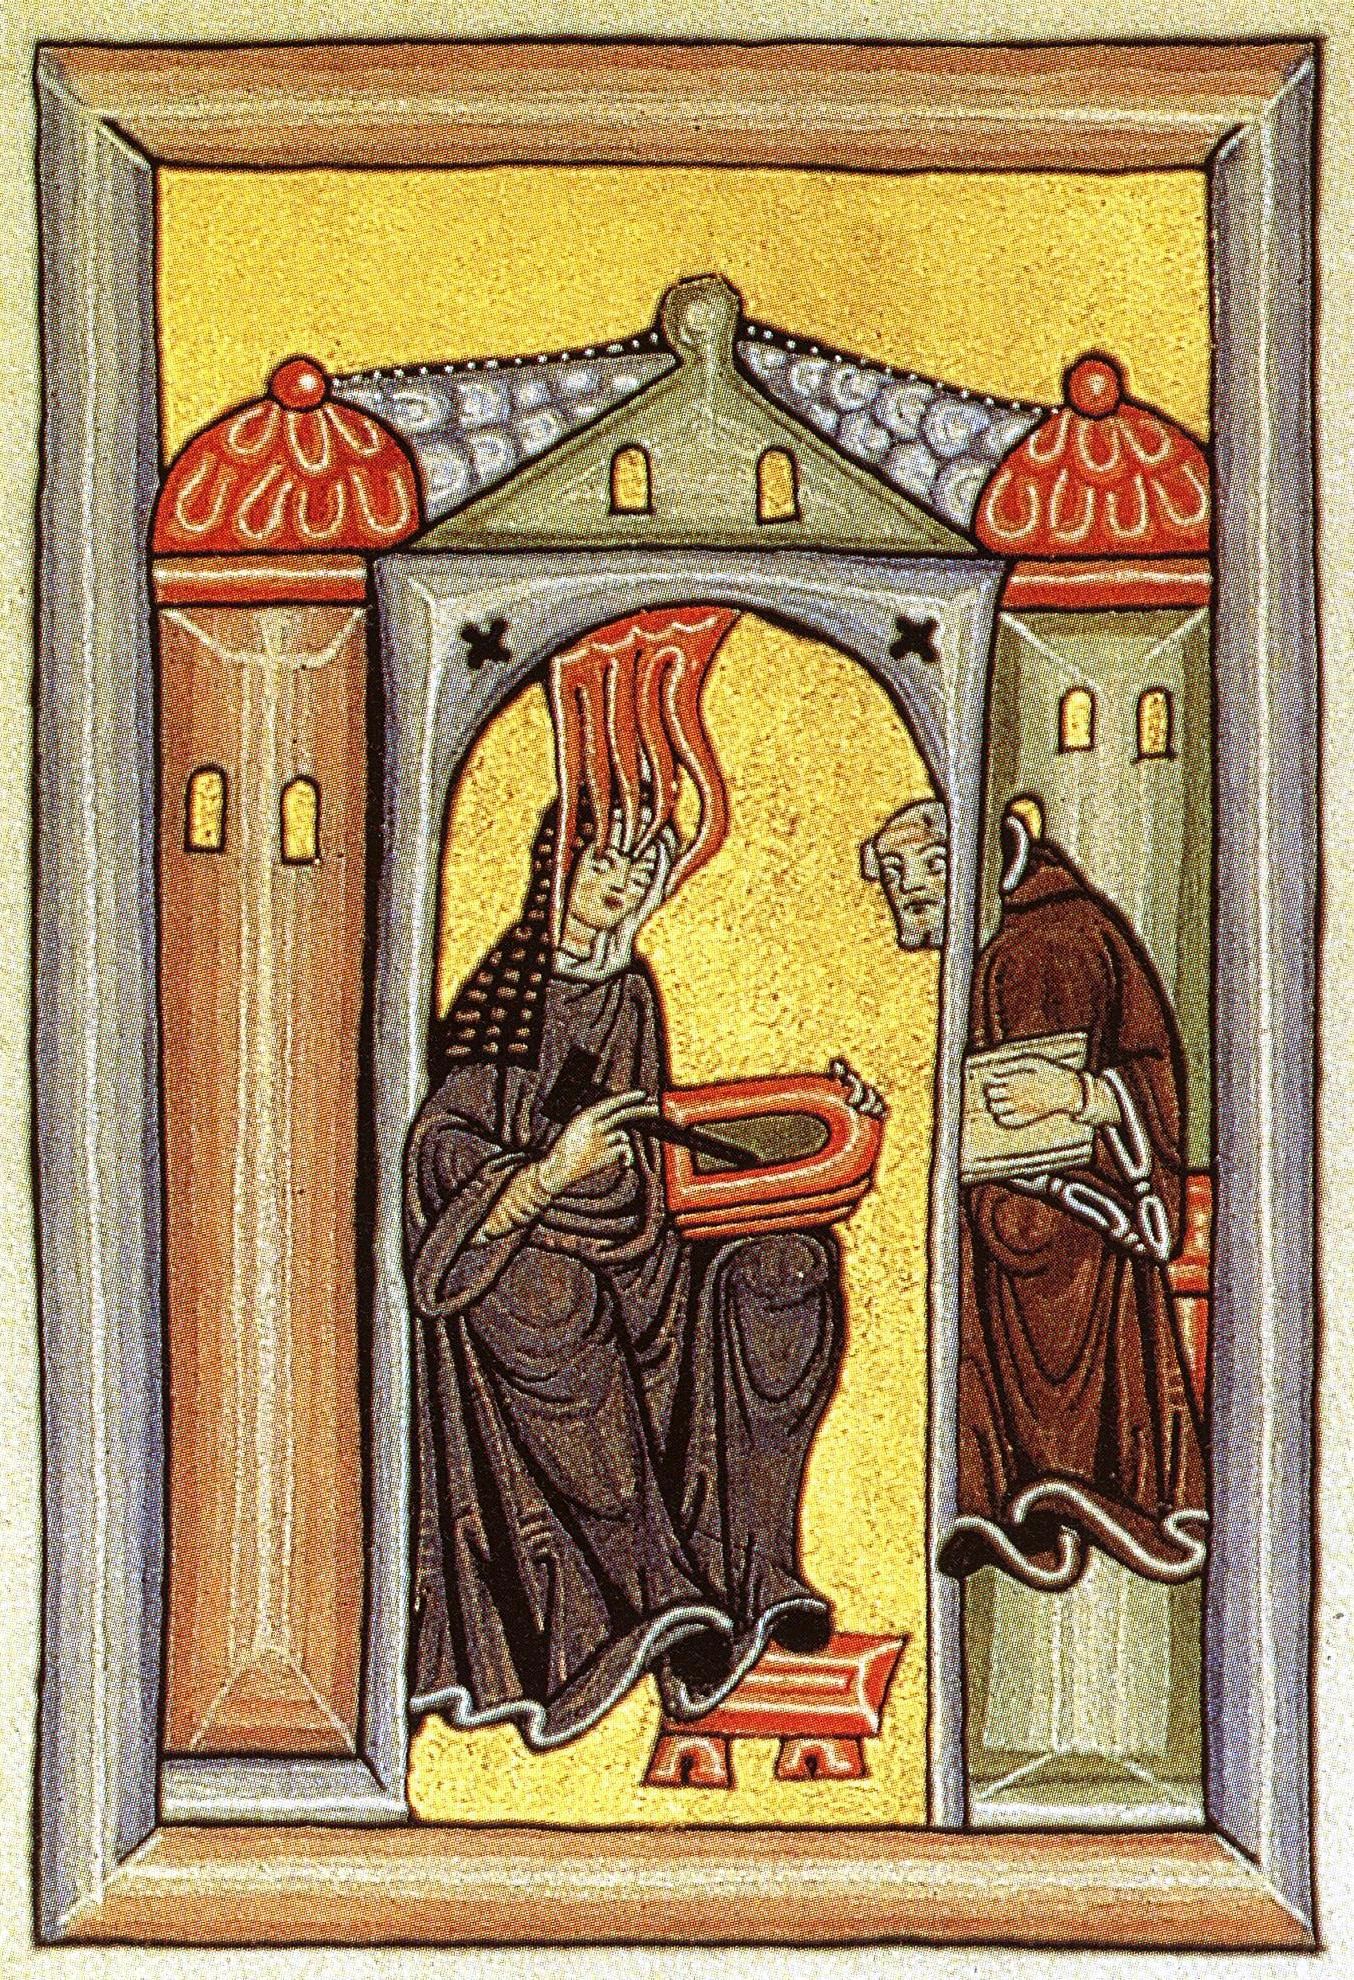 Hildegard von Bingen writing